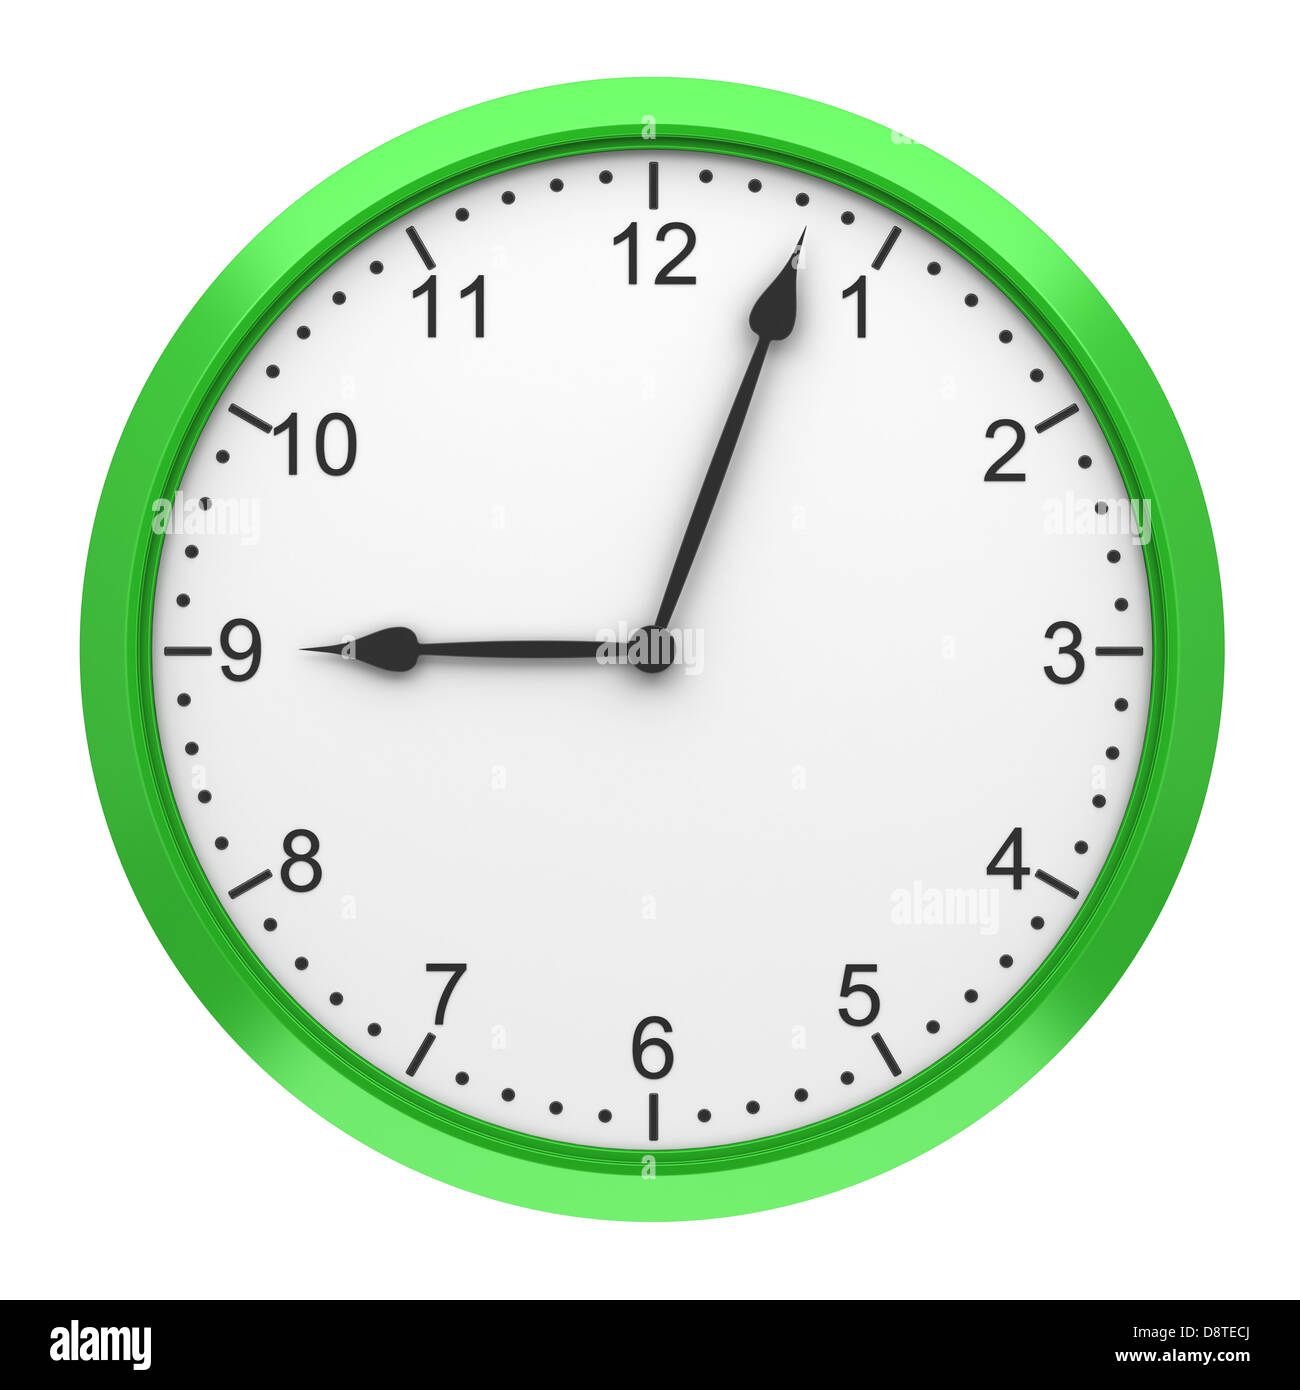 green round wall clock isolated on white - Stock Image